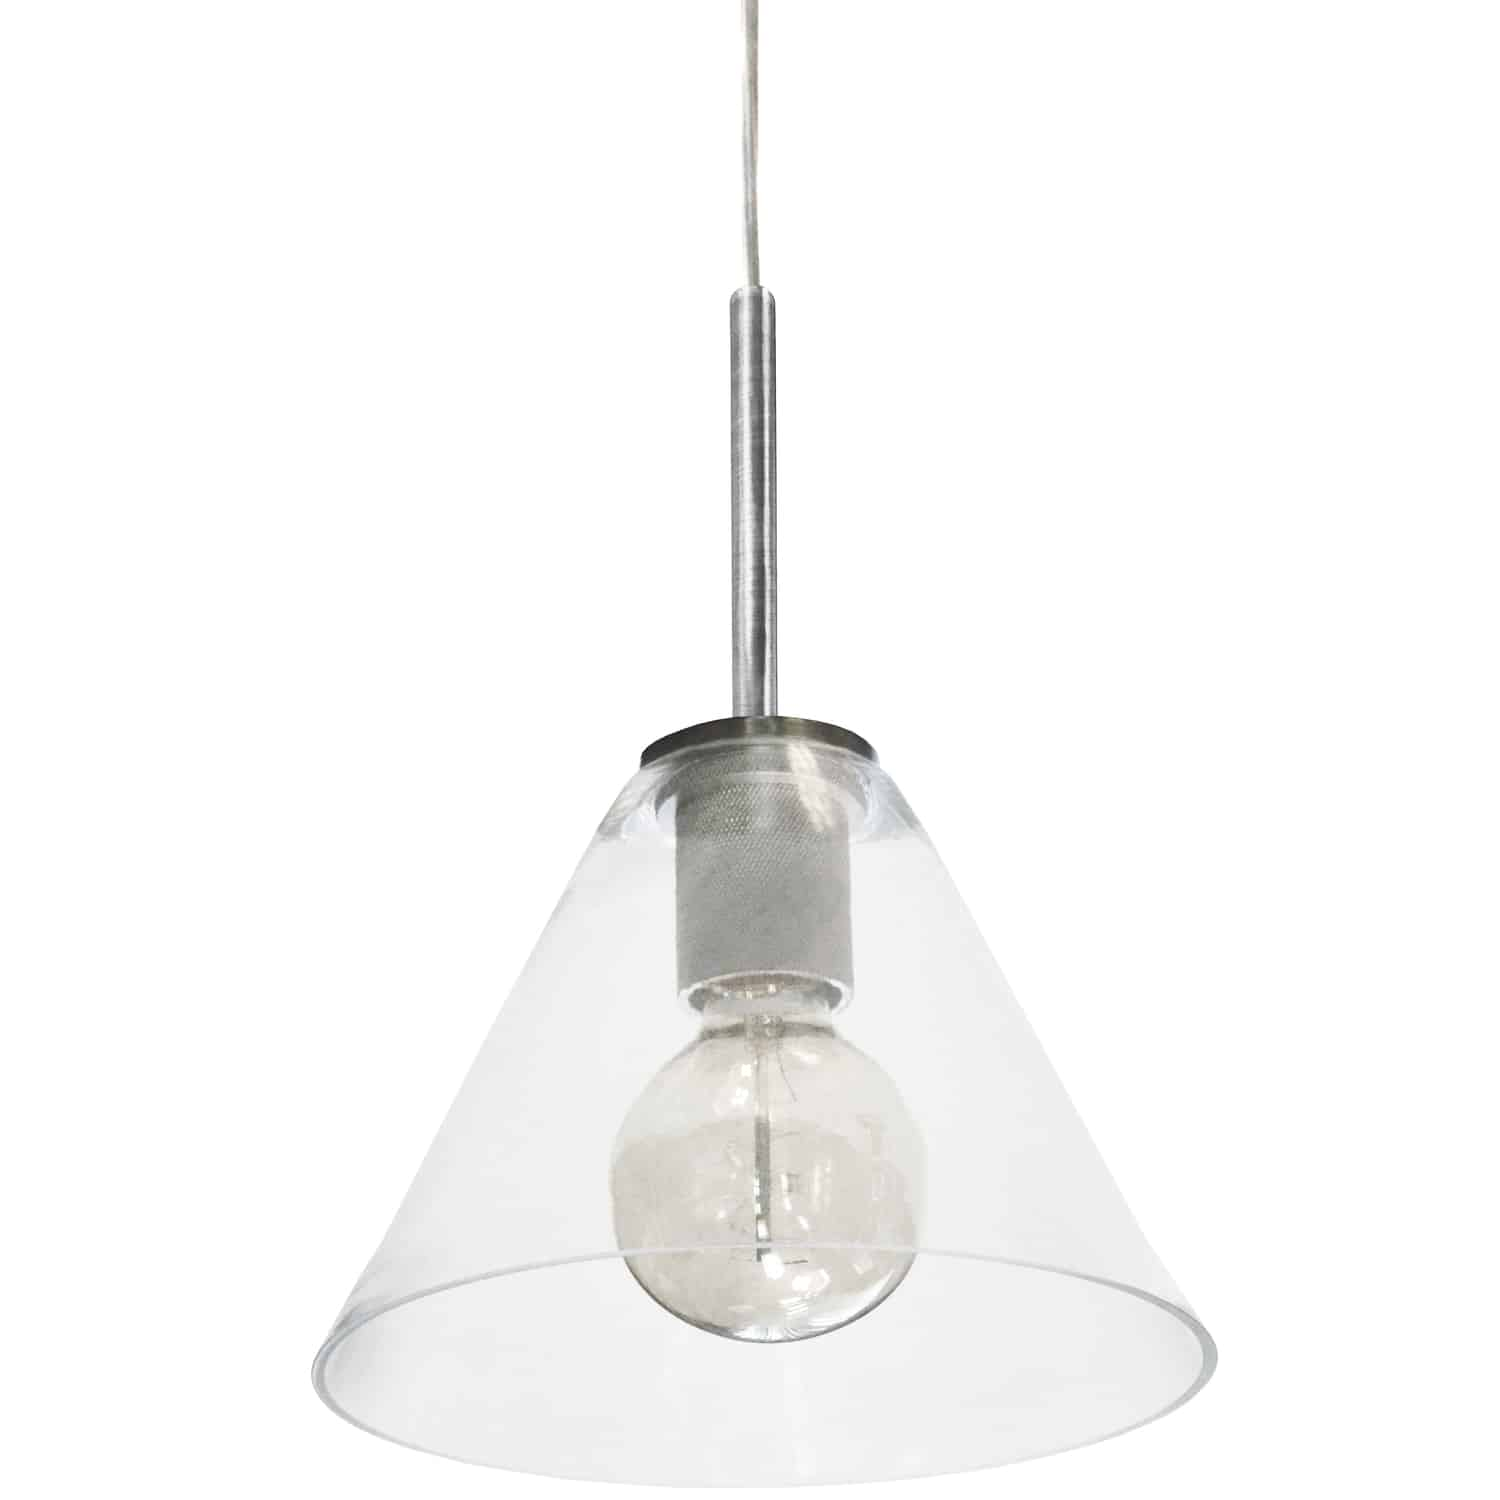 1 Light Incandescent Pendant, Satin Chrome with Clear Glass